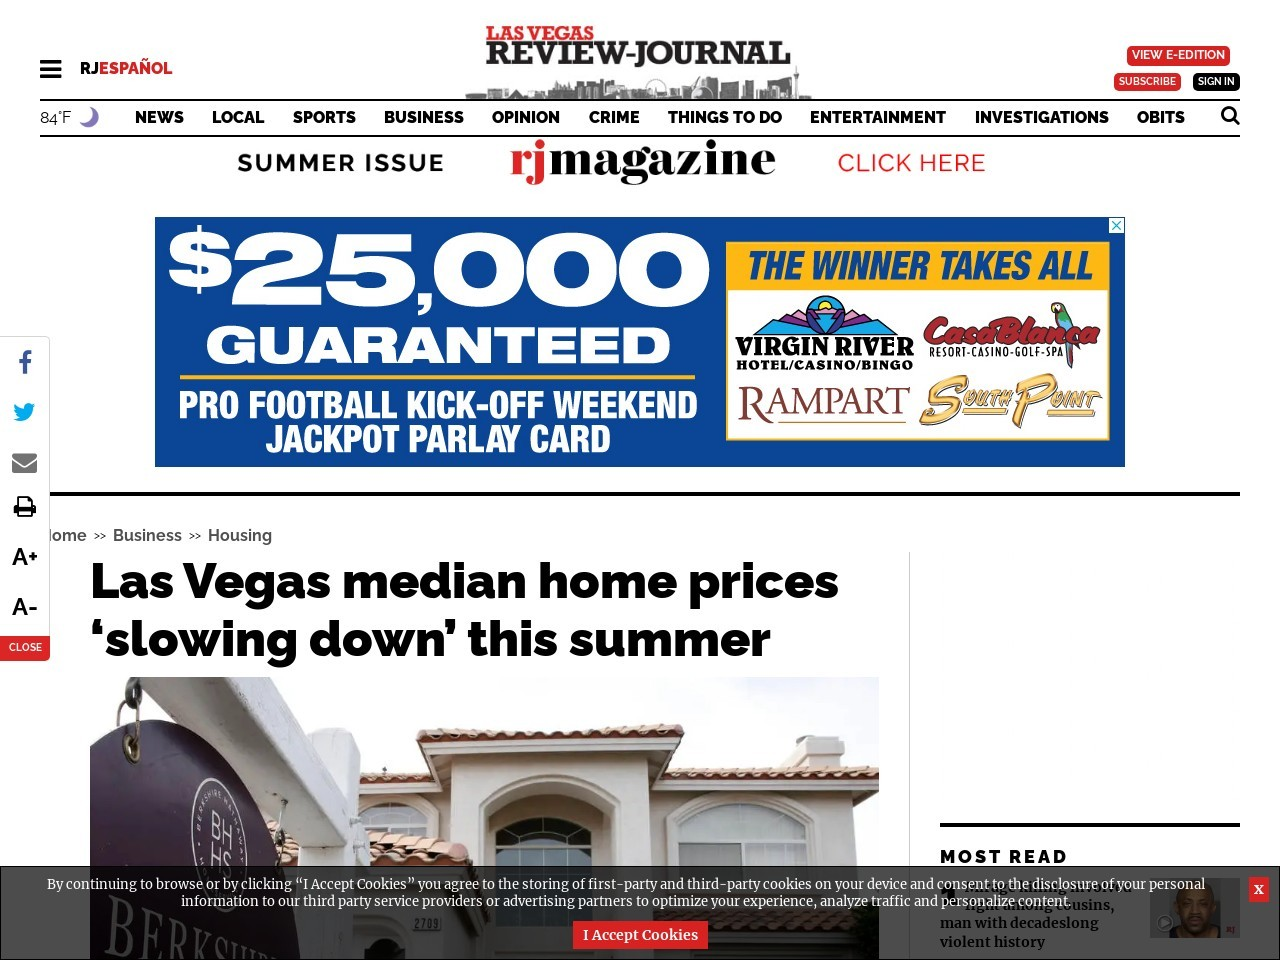 Las Vegas median home prices 'slowing down' this summer